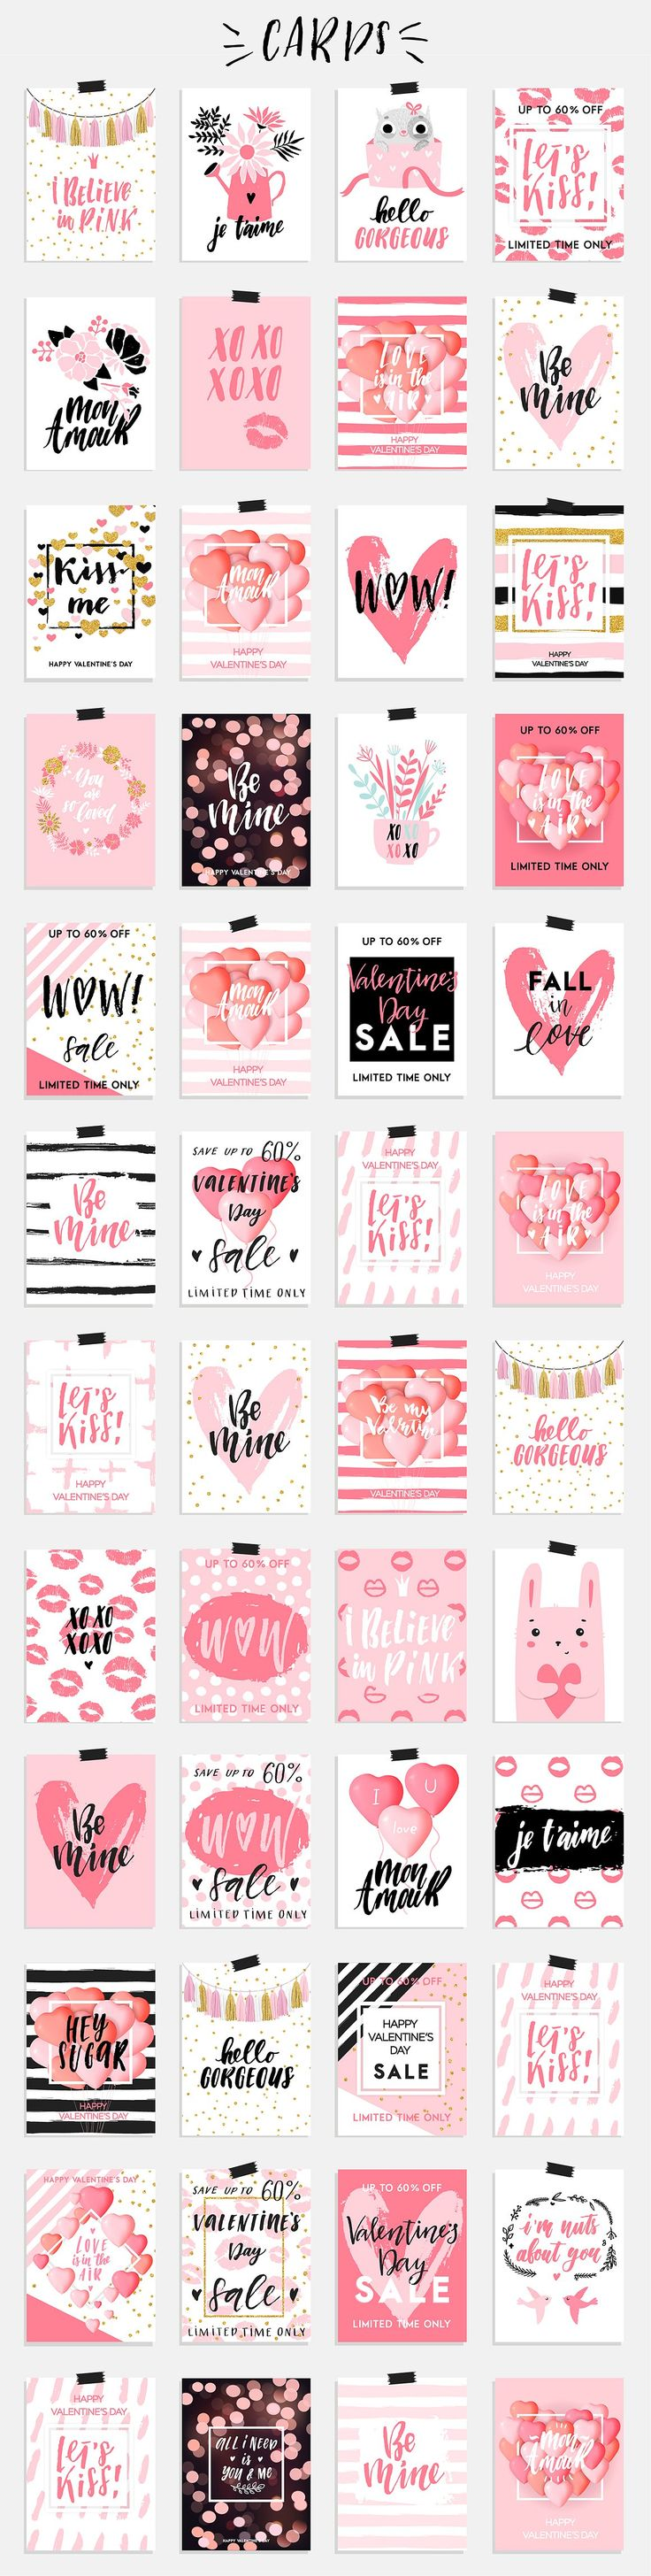 Valentine's Day big collection - cards, tags, overlays, seamless patterns and much more. Hand drawn elements and lettering made with love to decorate gifts for your loved ones.